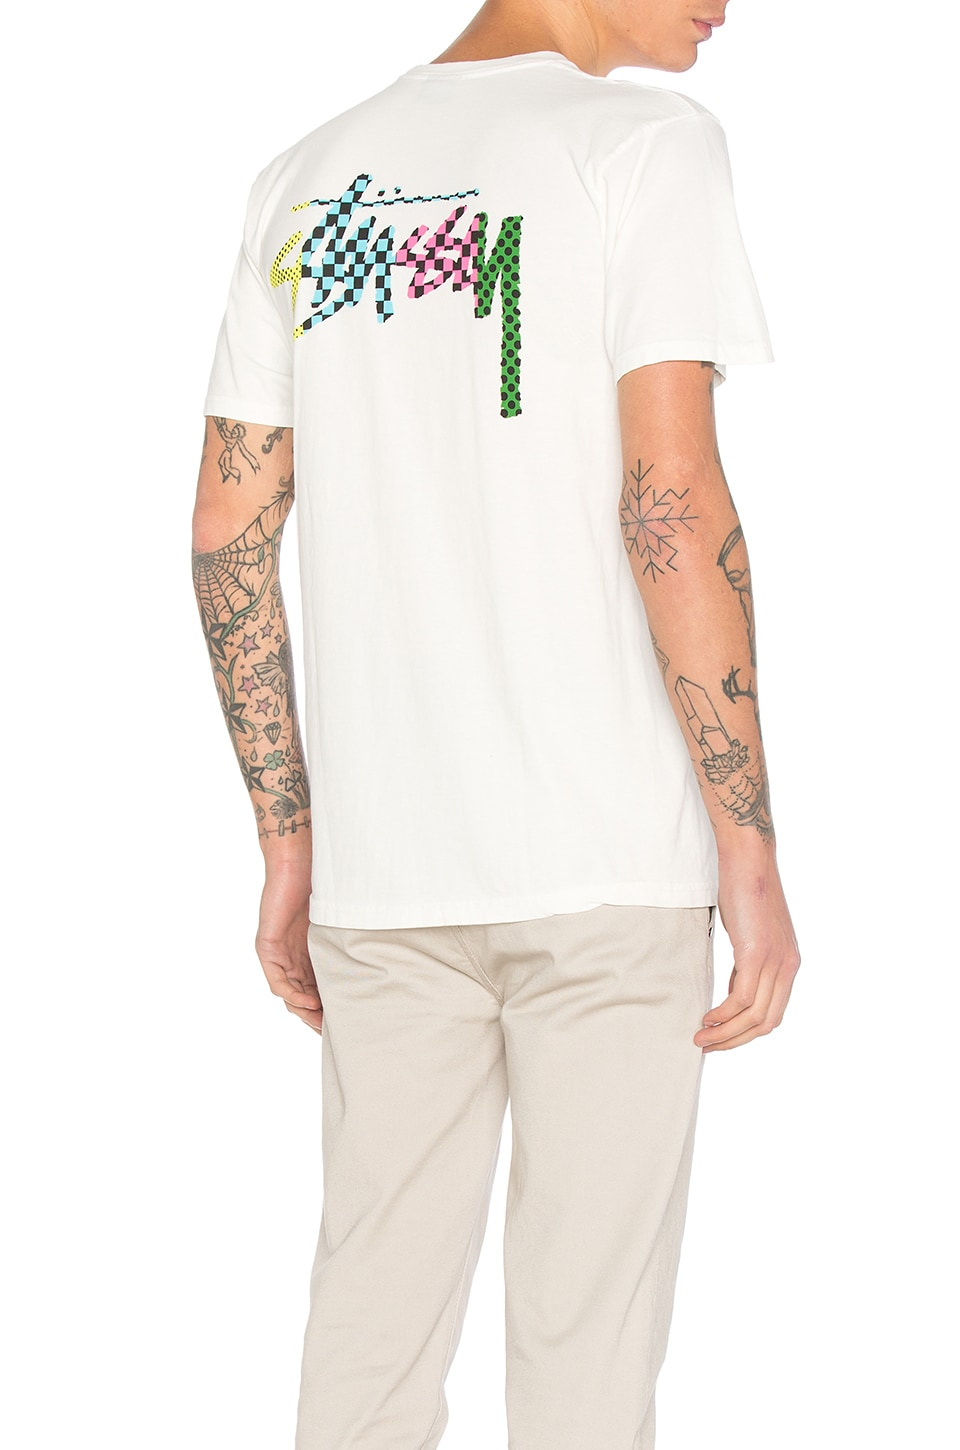 Checker Stock Tee by Stussy